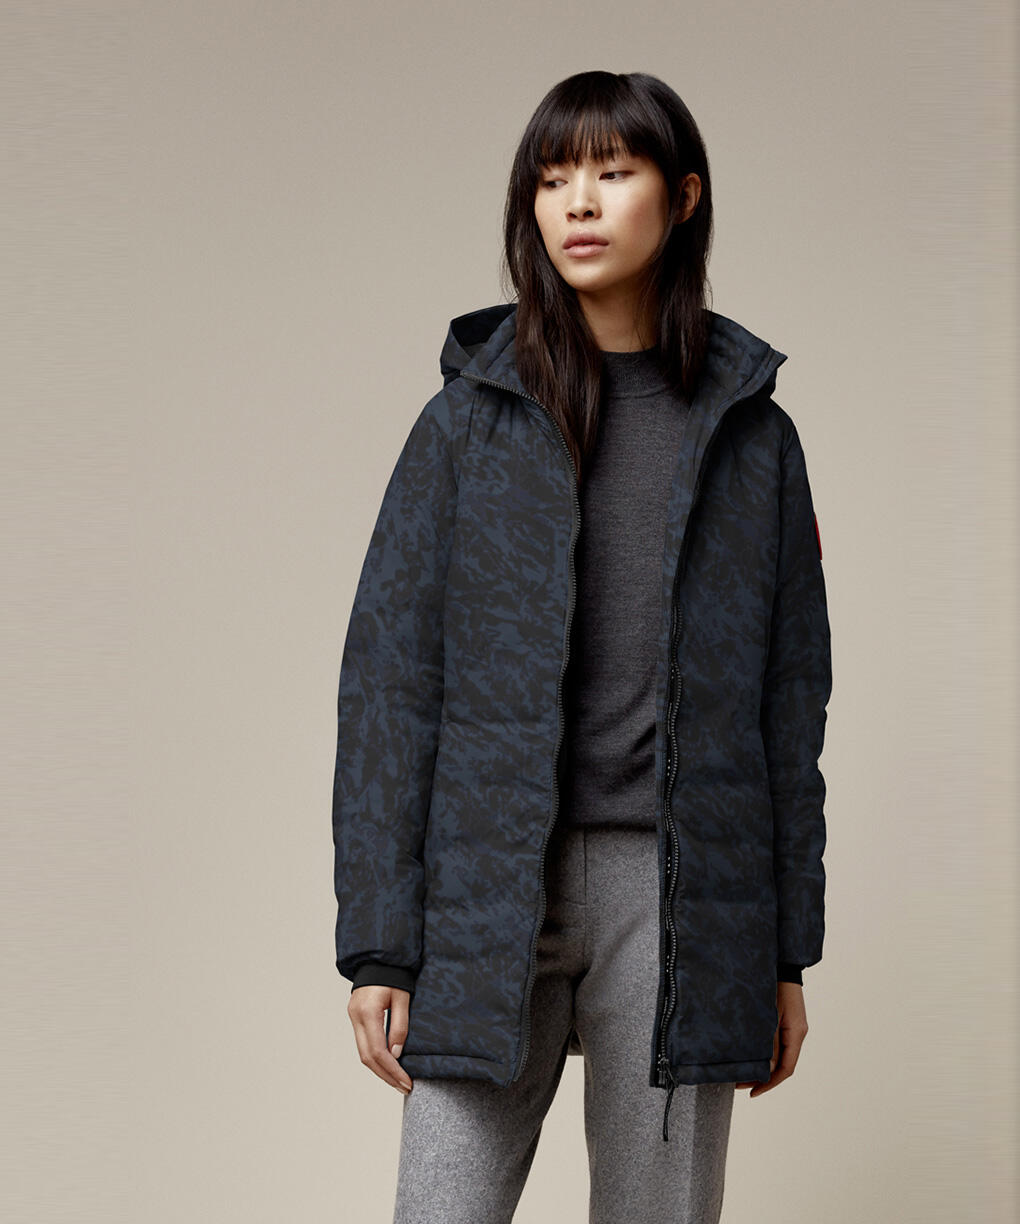 CAMP HOODED JACKET FUSION FIT - PRINT